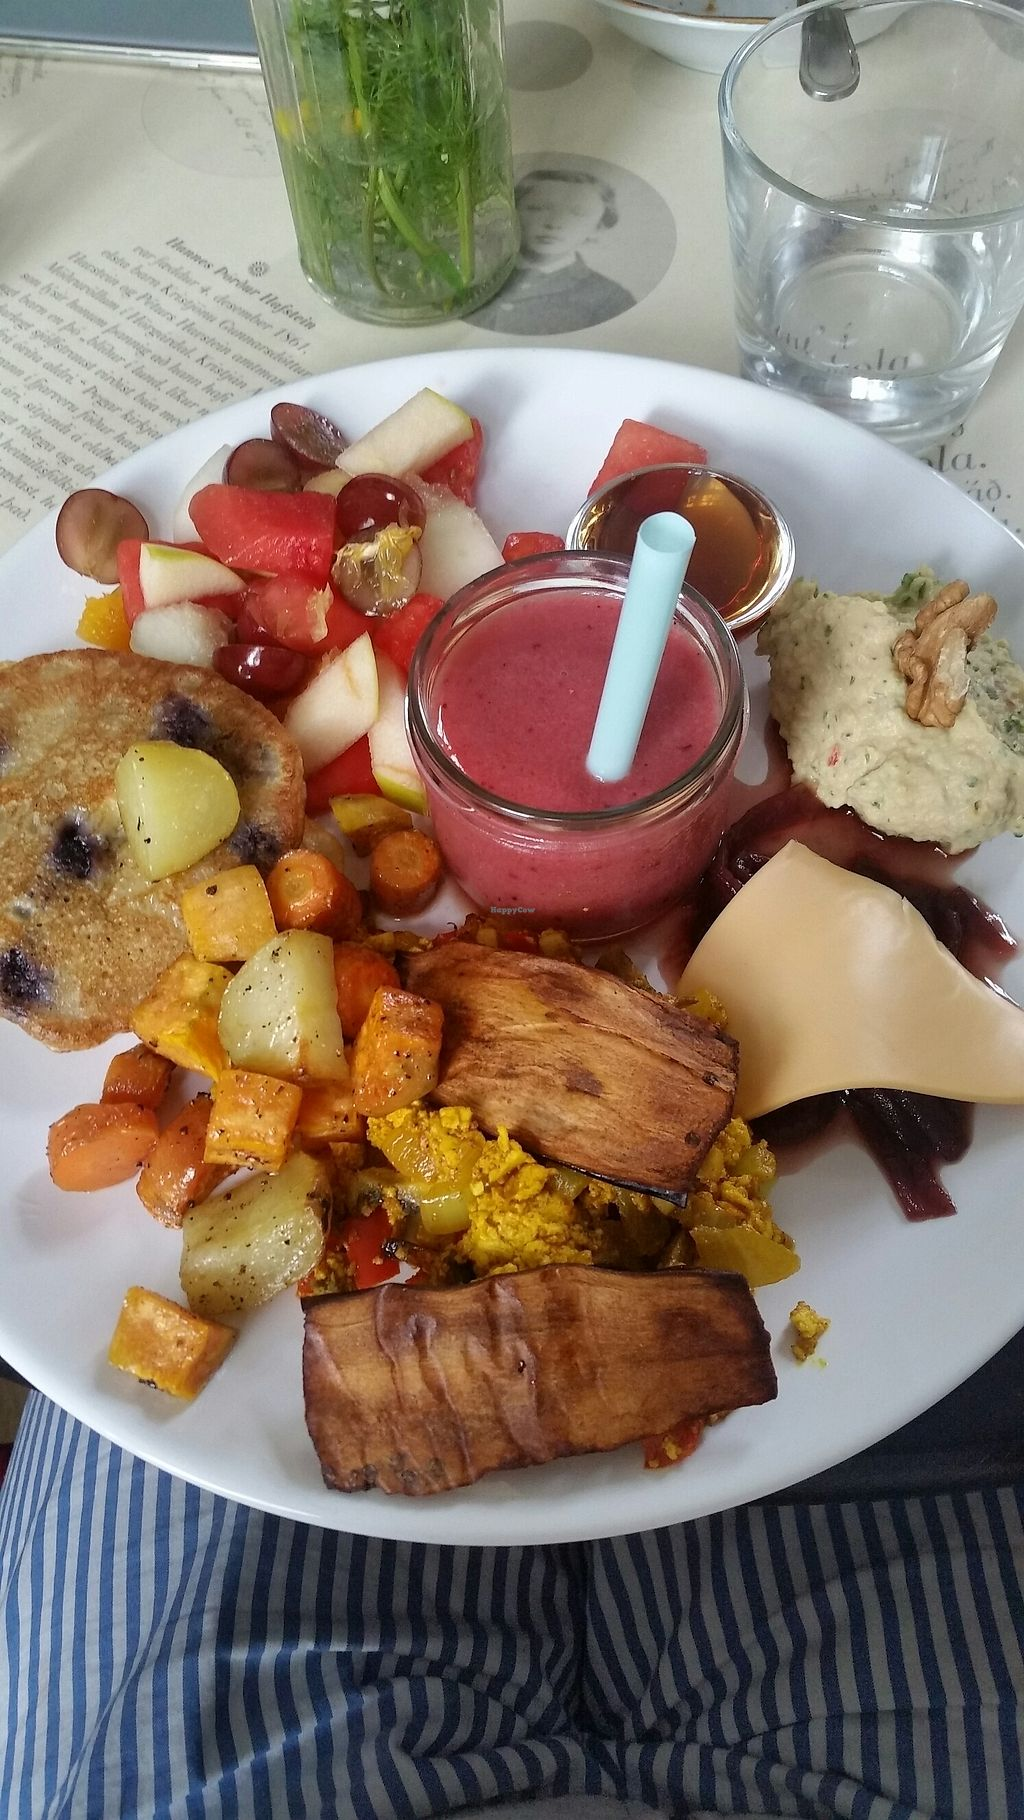 """Photo of Hannesarholt  by <a href=""""/members/profile/janinasvensgard"""">janinasvensgard</a> <br/>the vegan brunch plate <br/> July 8, 2017  - <a href='/contact/abuse/image/68652/277898'>Report</a>"""